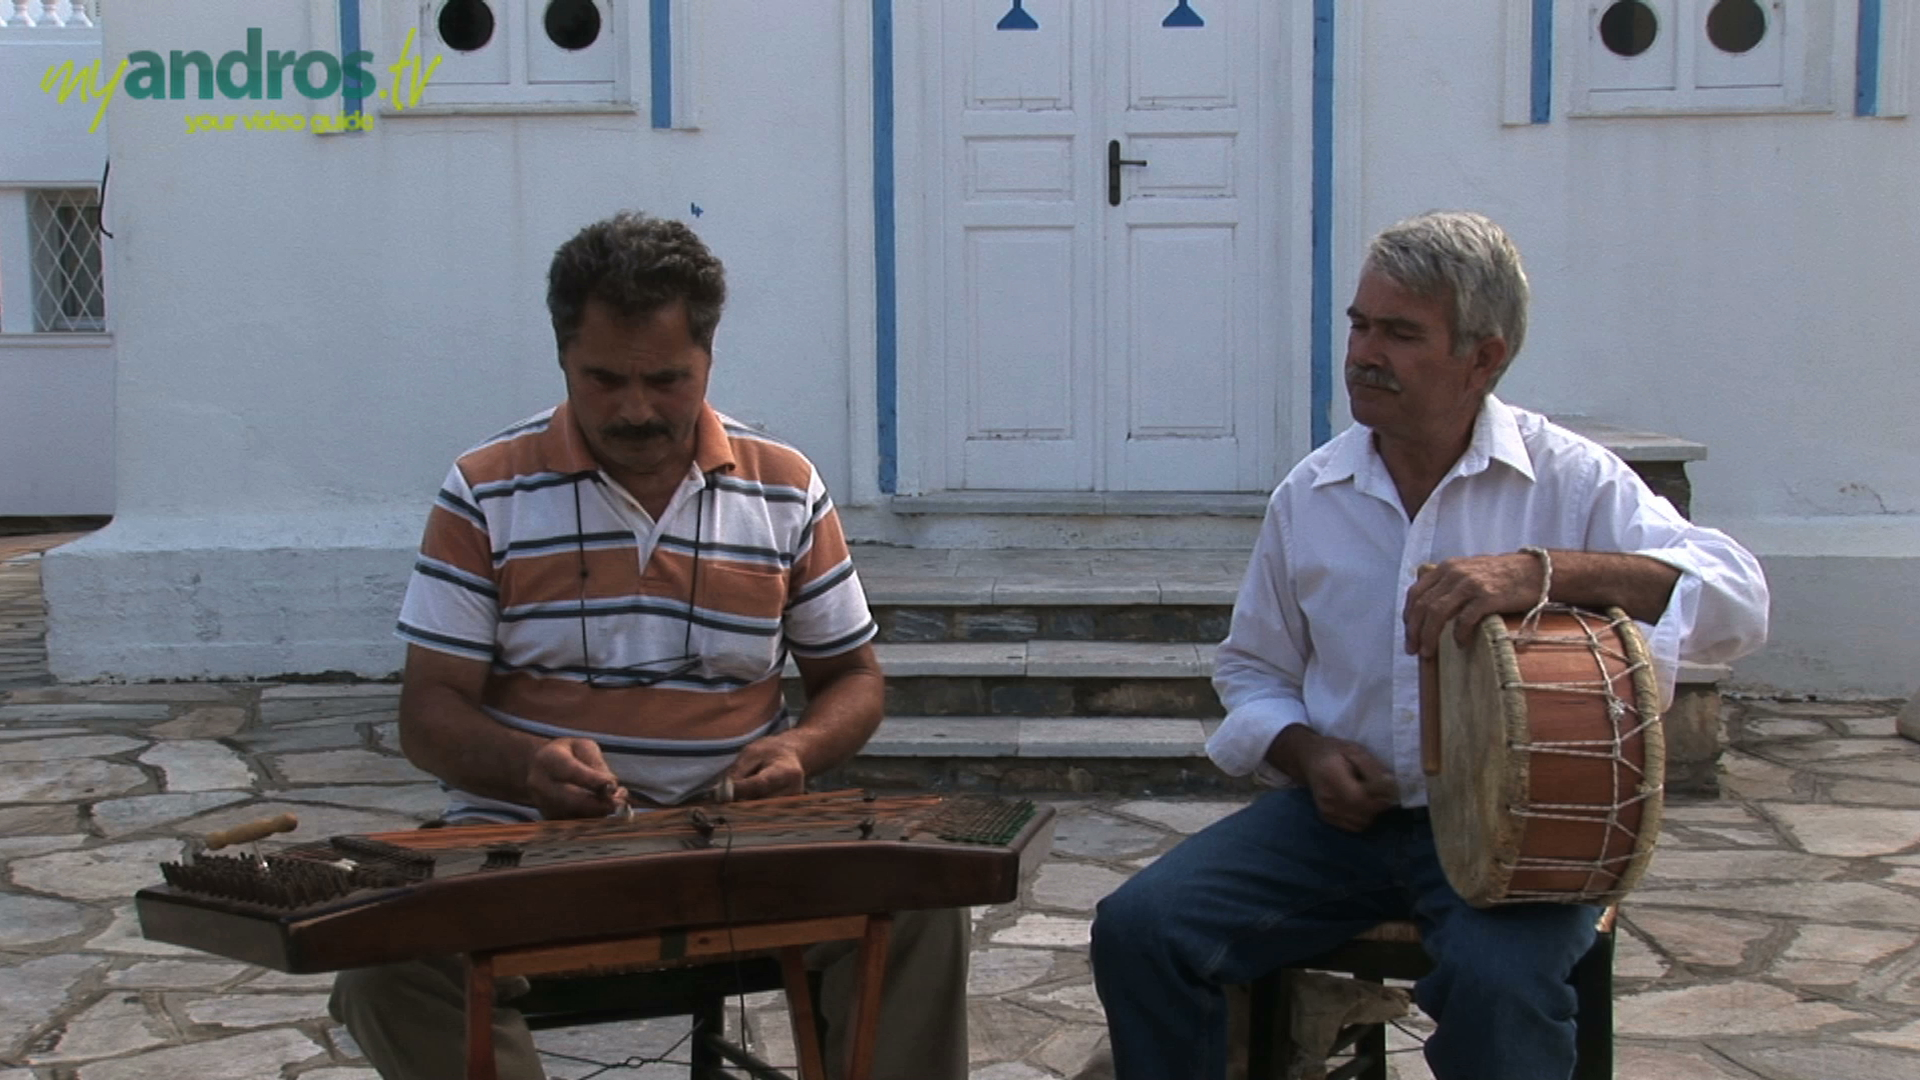 Enjoy the Traditional Music of Andros